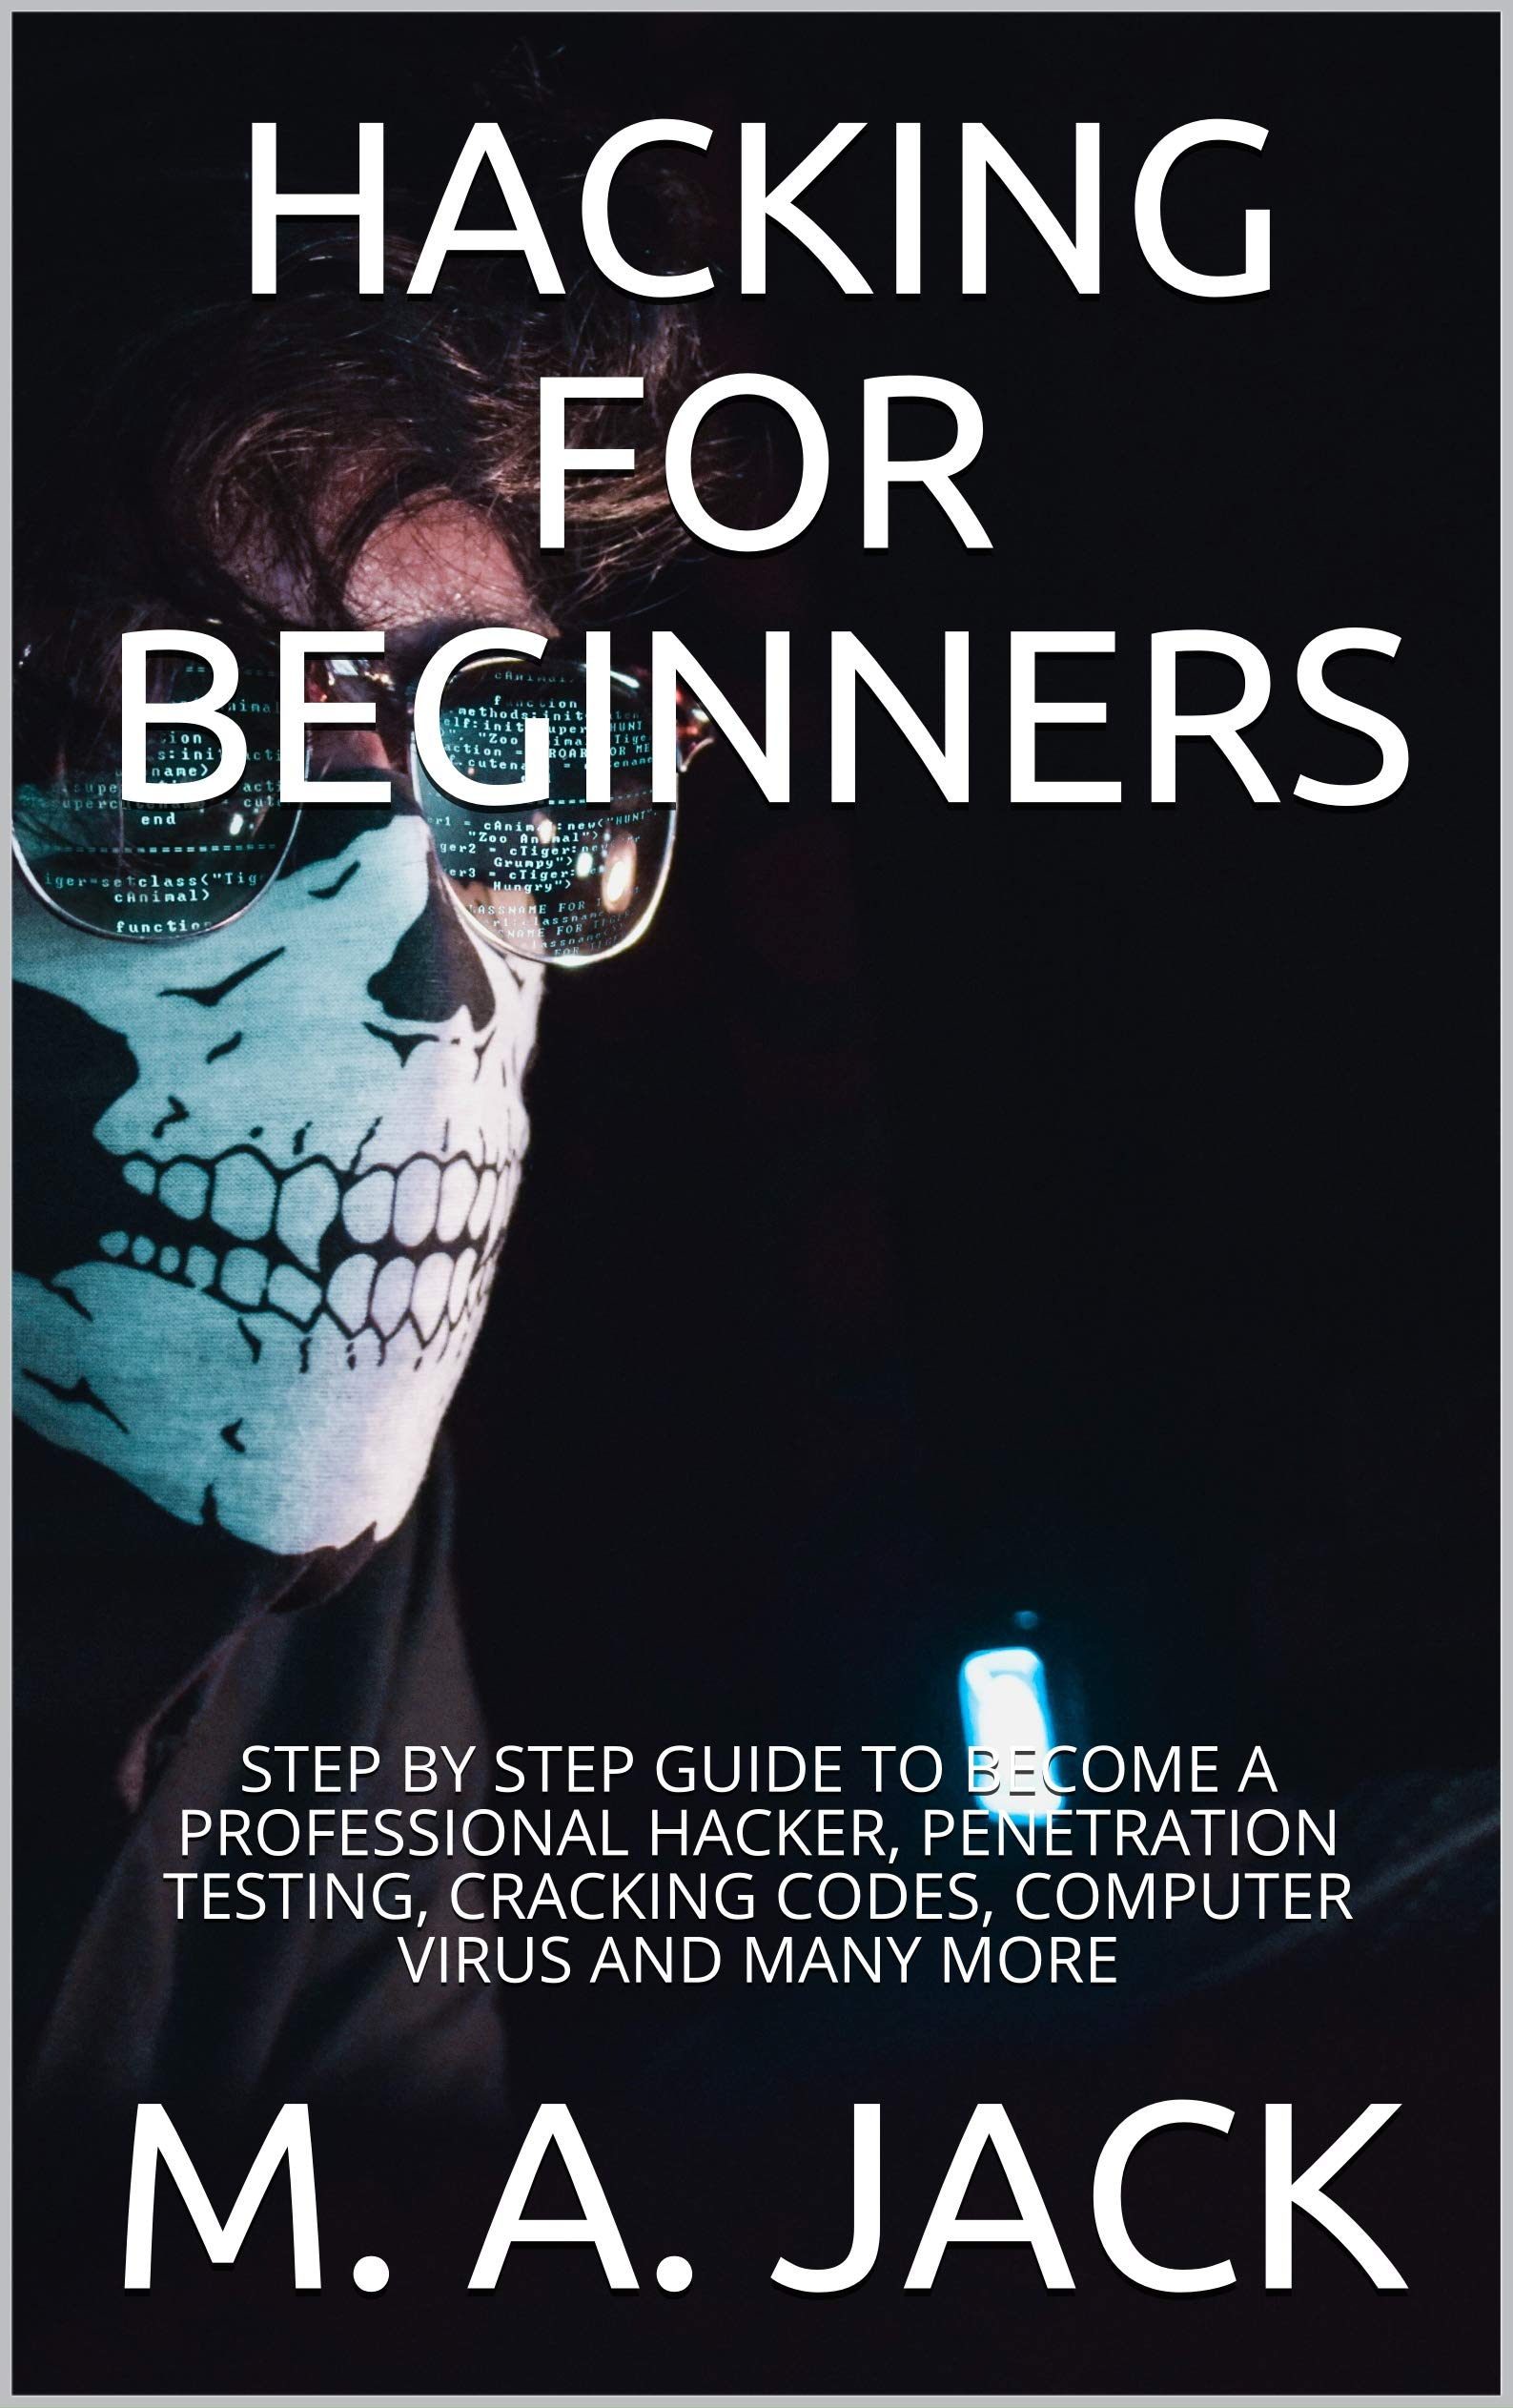 HACKING FOR BEGINNERS: STEP BY STEP GUIDE TO BECOME A PROFESSIONAL HACKER, PENETRATION TESTING, CRACKING CODES, COMPUTER VIRUS AND MANY MORE